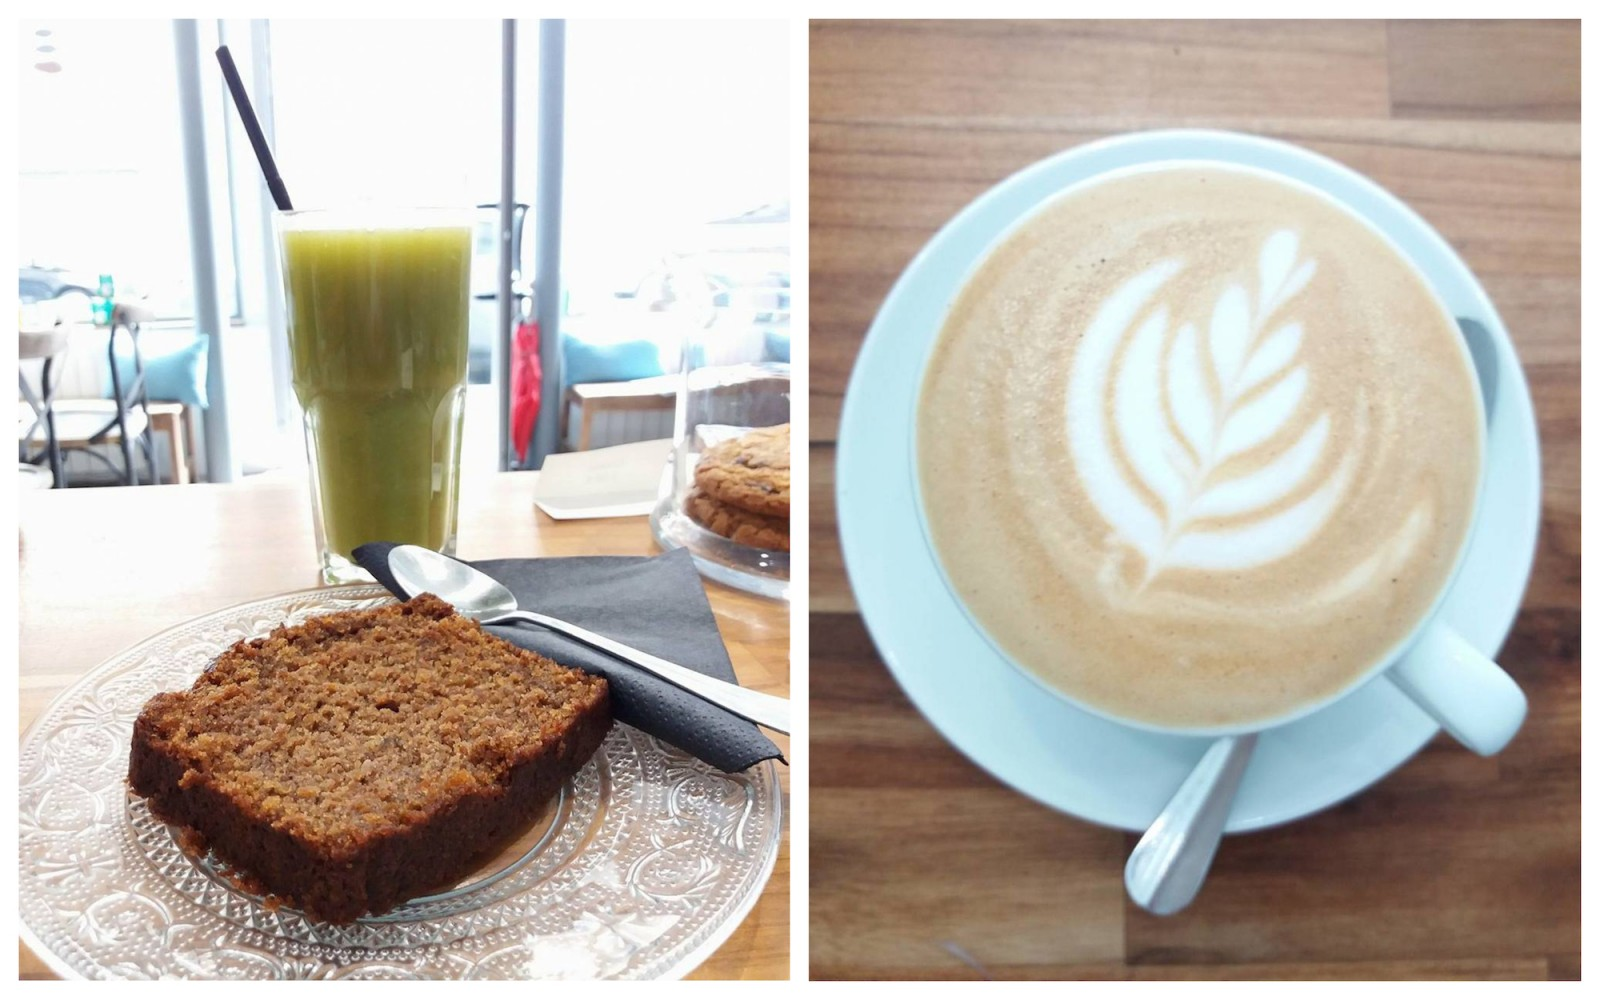 HiP Paris visits Le Cairn - naturopathy and coffee shop